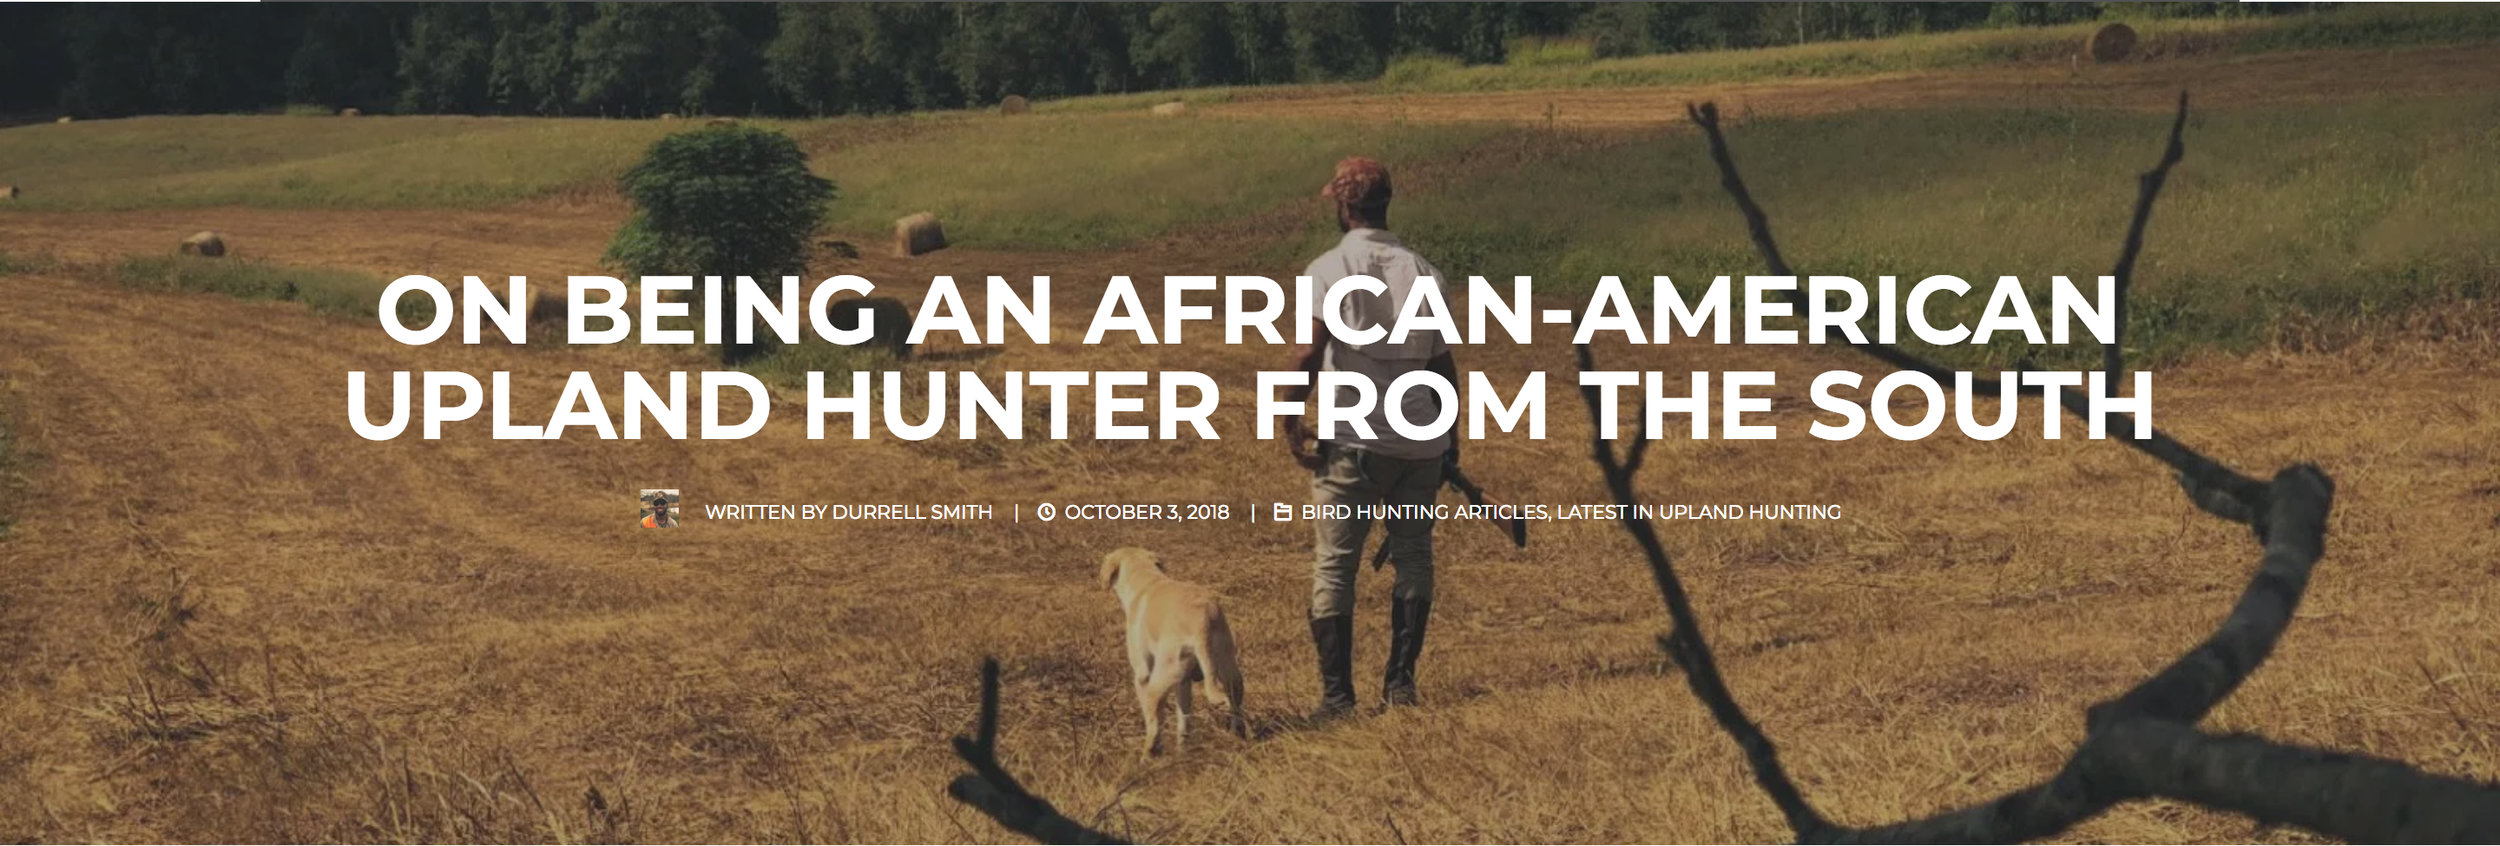 Project Upland | On Being an African-American Upland Hunter from the South . - https://www.projectupland.com/latest-upland-hunting/african-american-upland-hunter/